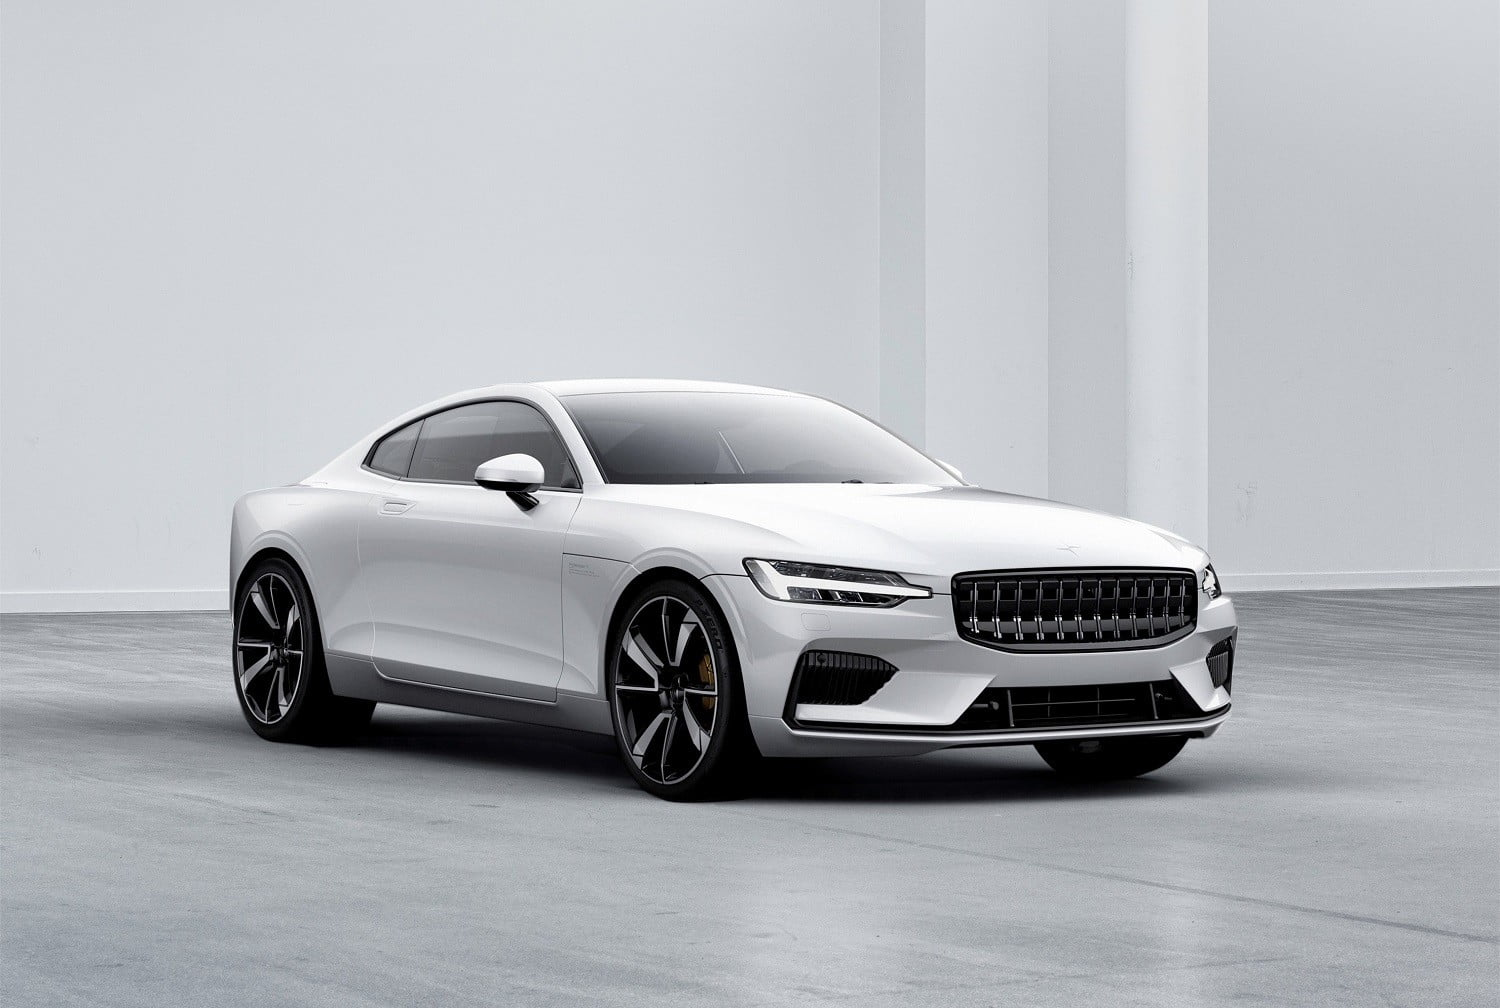 Polestar will release a competitor Tesla model 3 in 2019 25